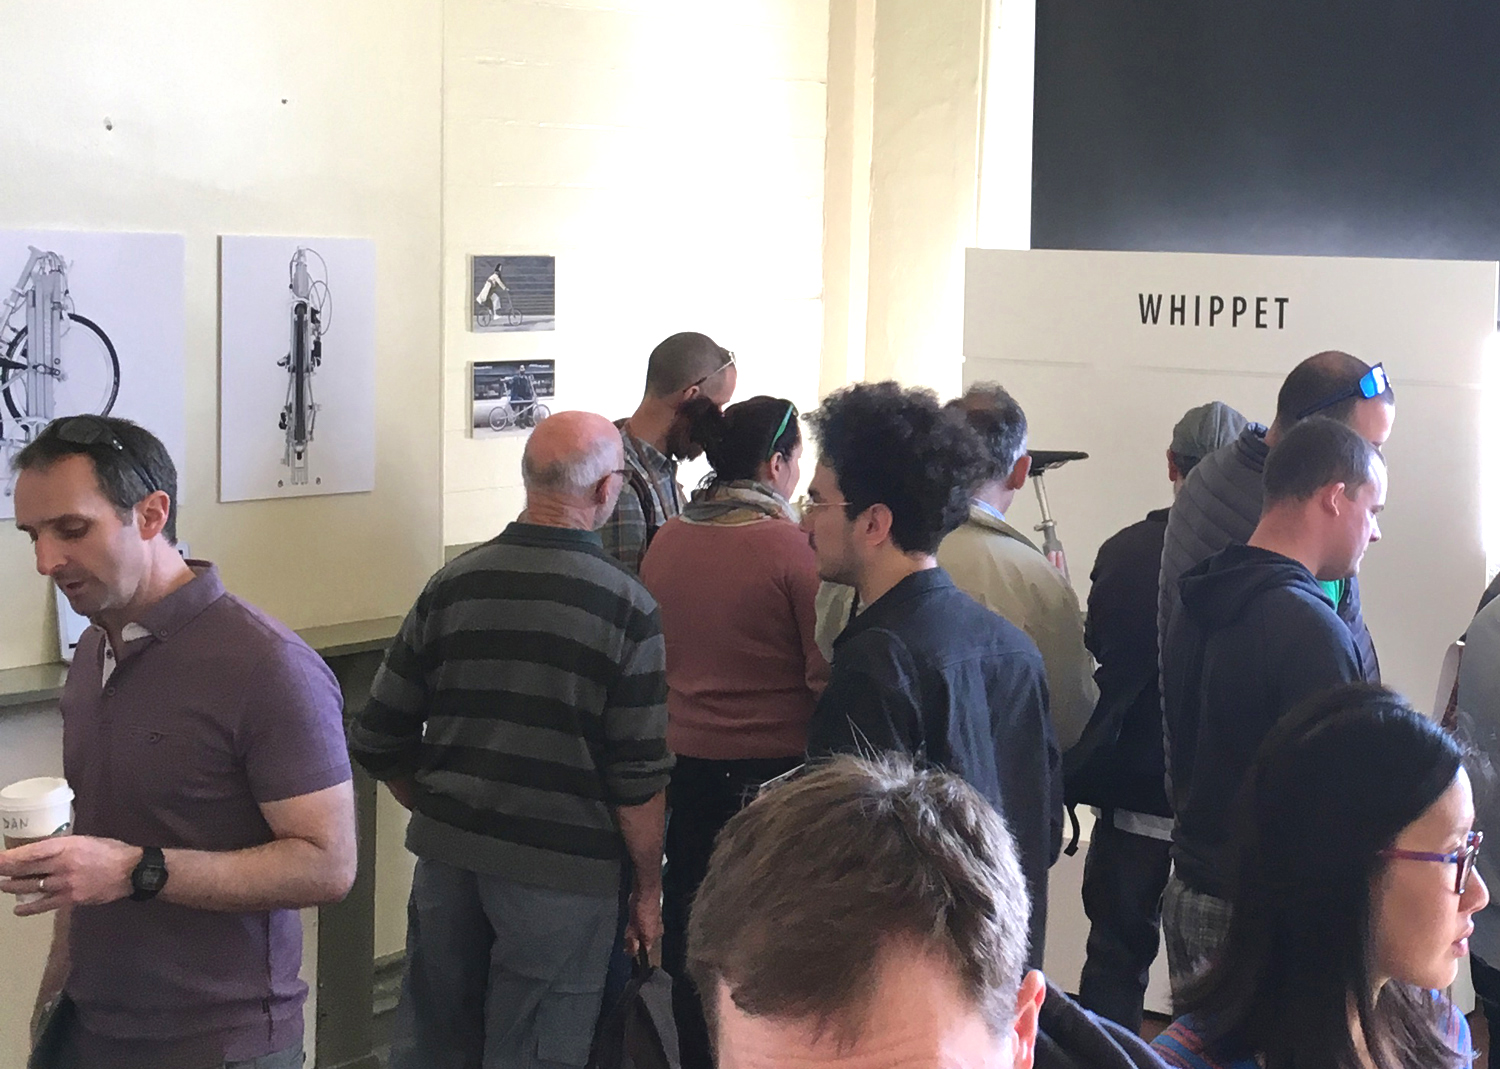 WHIPPET BICYCLE at Bespoked 2017 - busy stand-.JPG